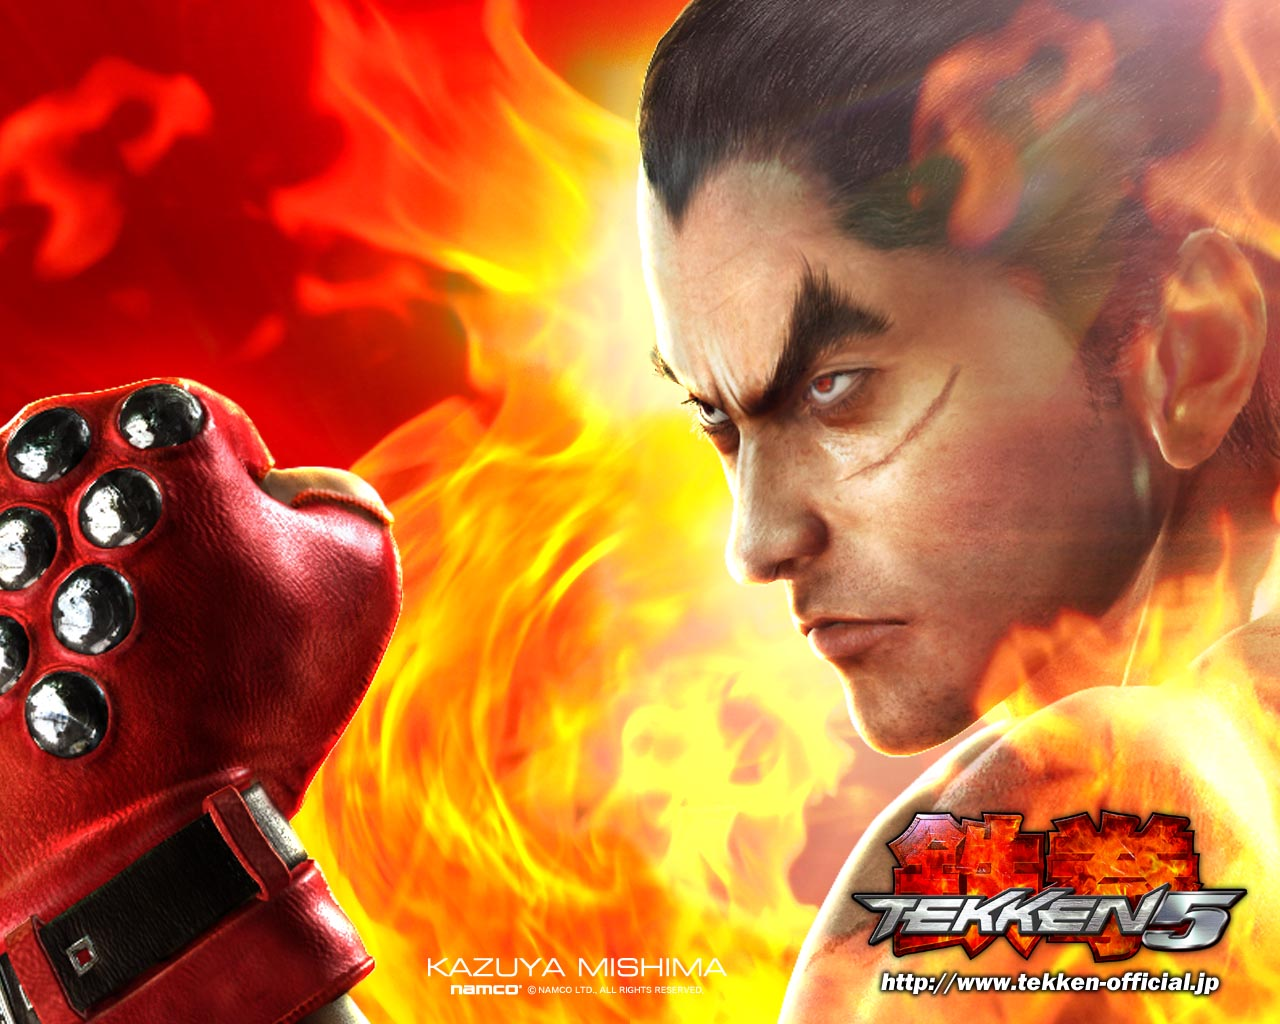 free wallpapersvaldazzar: tekken 5 wallpapers